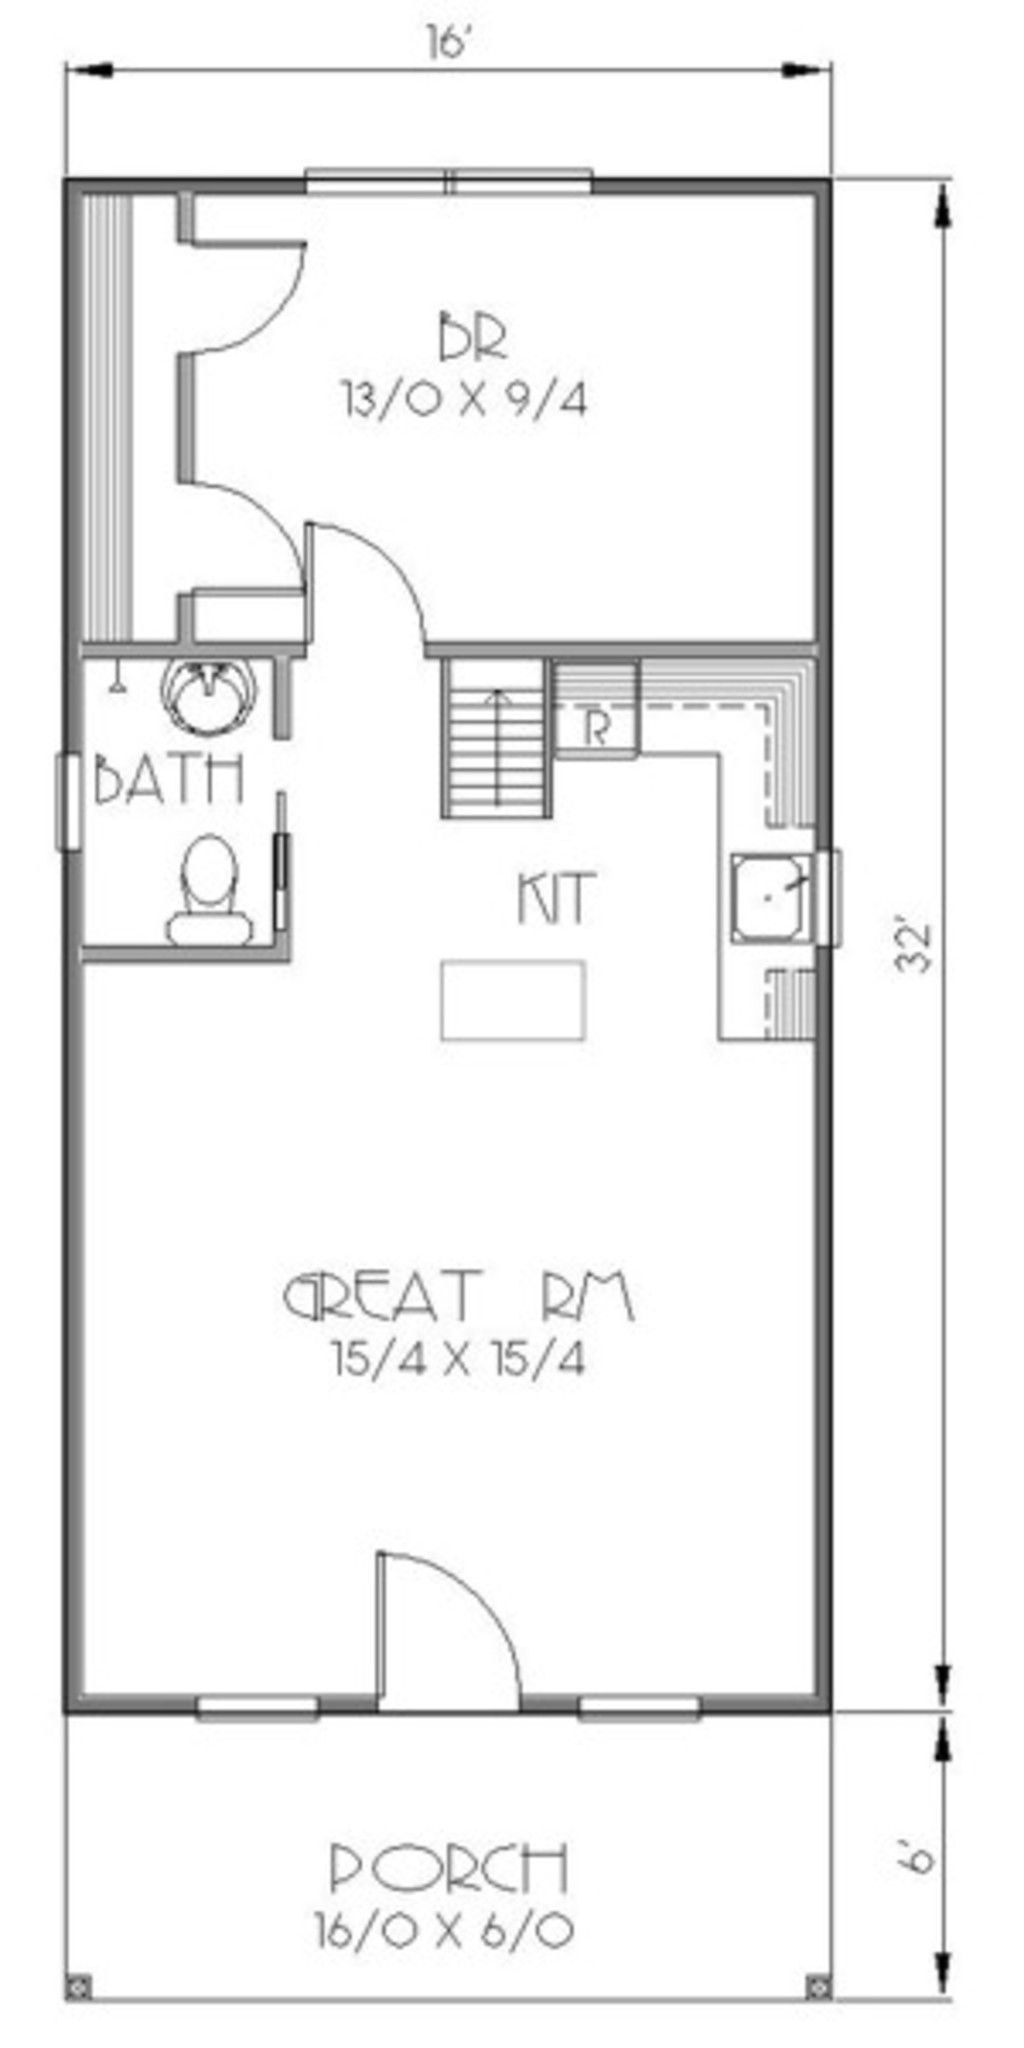 Bungalow style house plan 1 beds 1 baths 812 sq ft plan for Tiny house with main floor bedroom